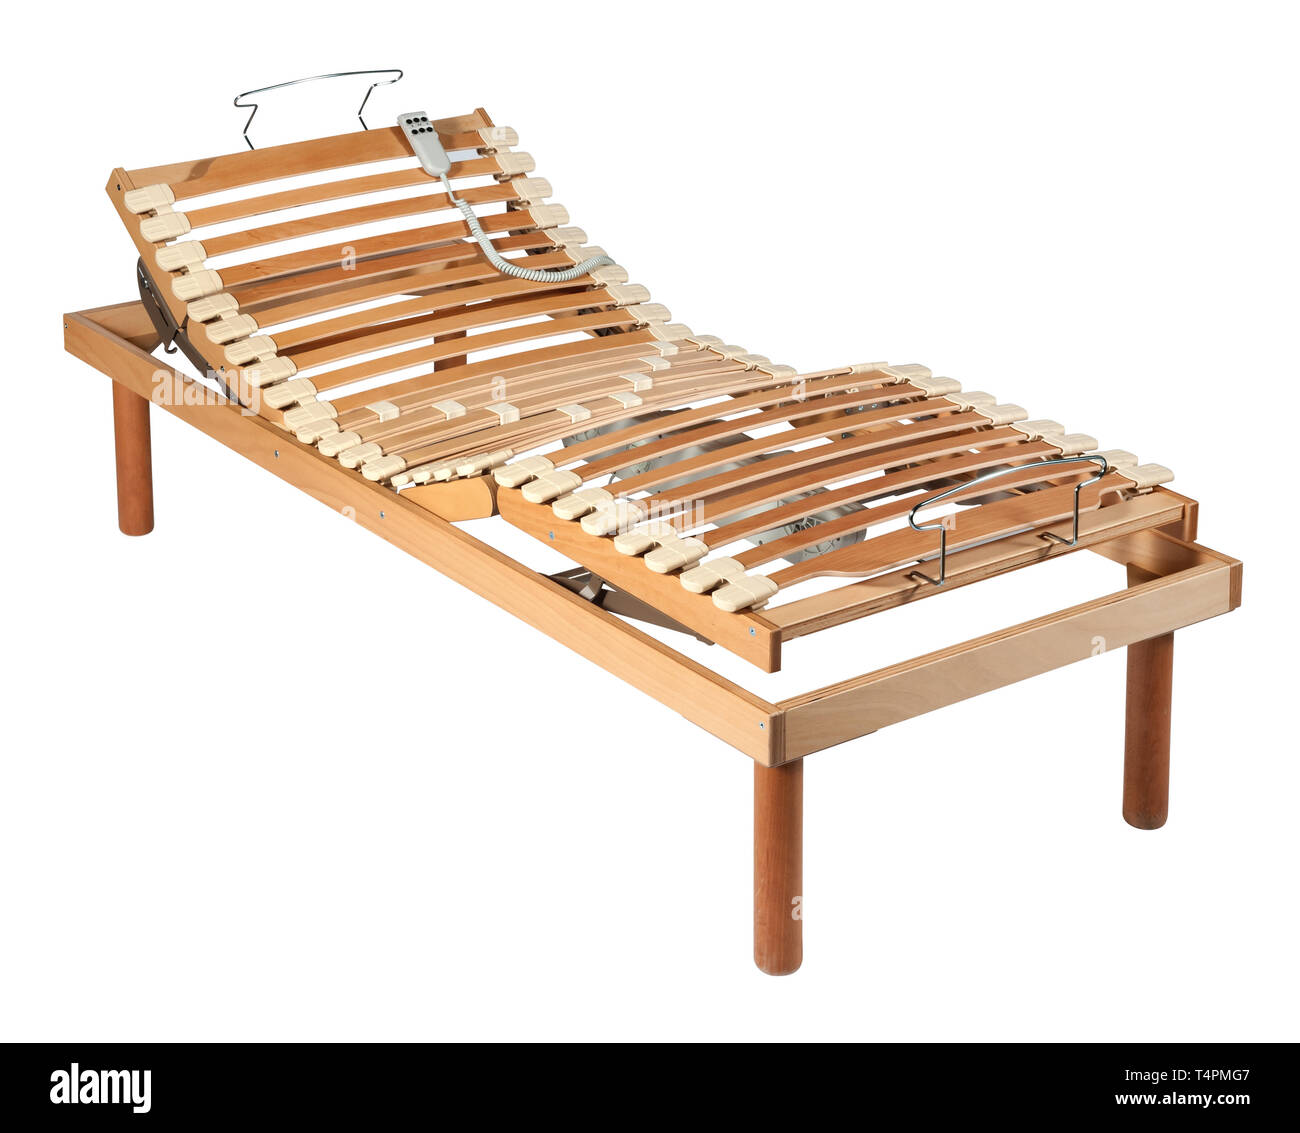 Single wooden orthopaedic bed with net and shock absorbers and electric adjustment mechanism isolated on white - Stock Image